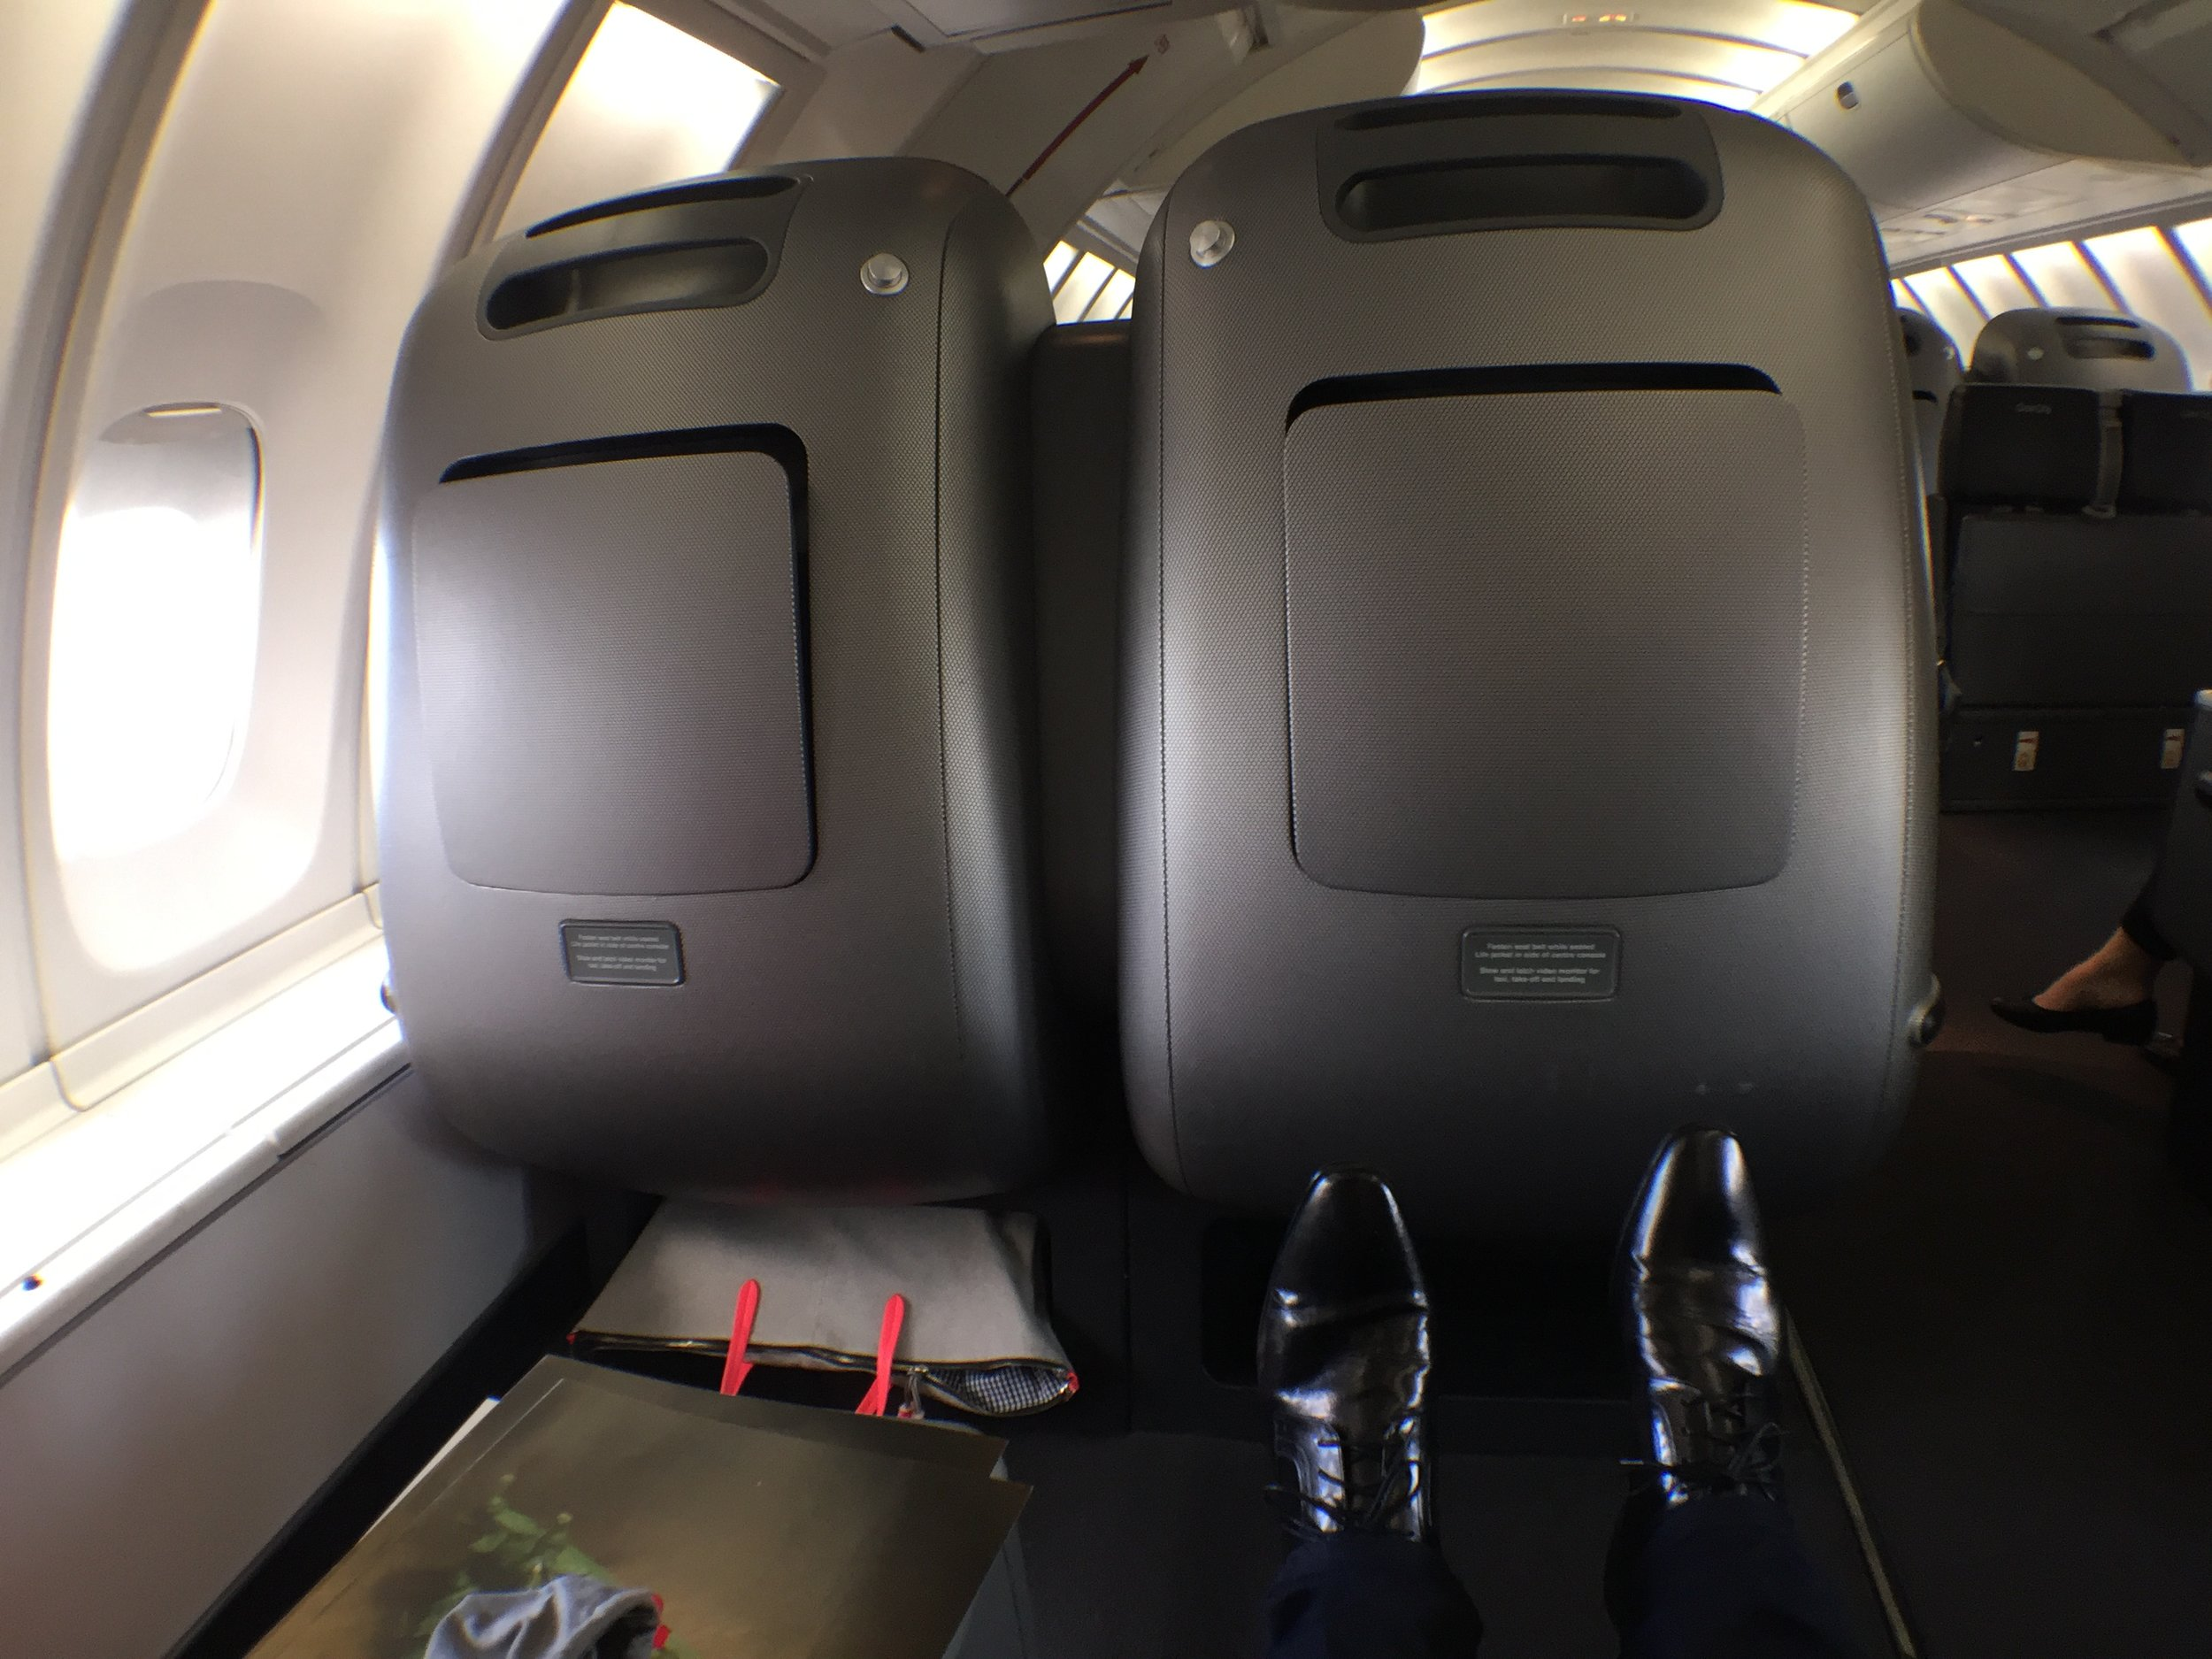 We came for the legroom...